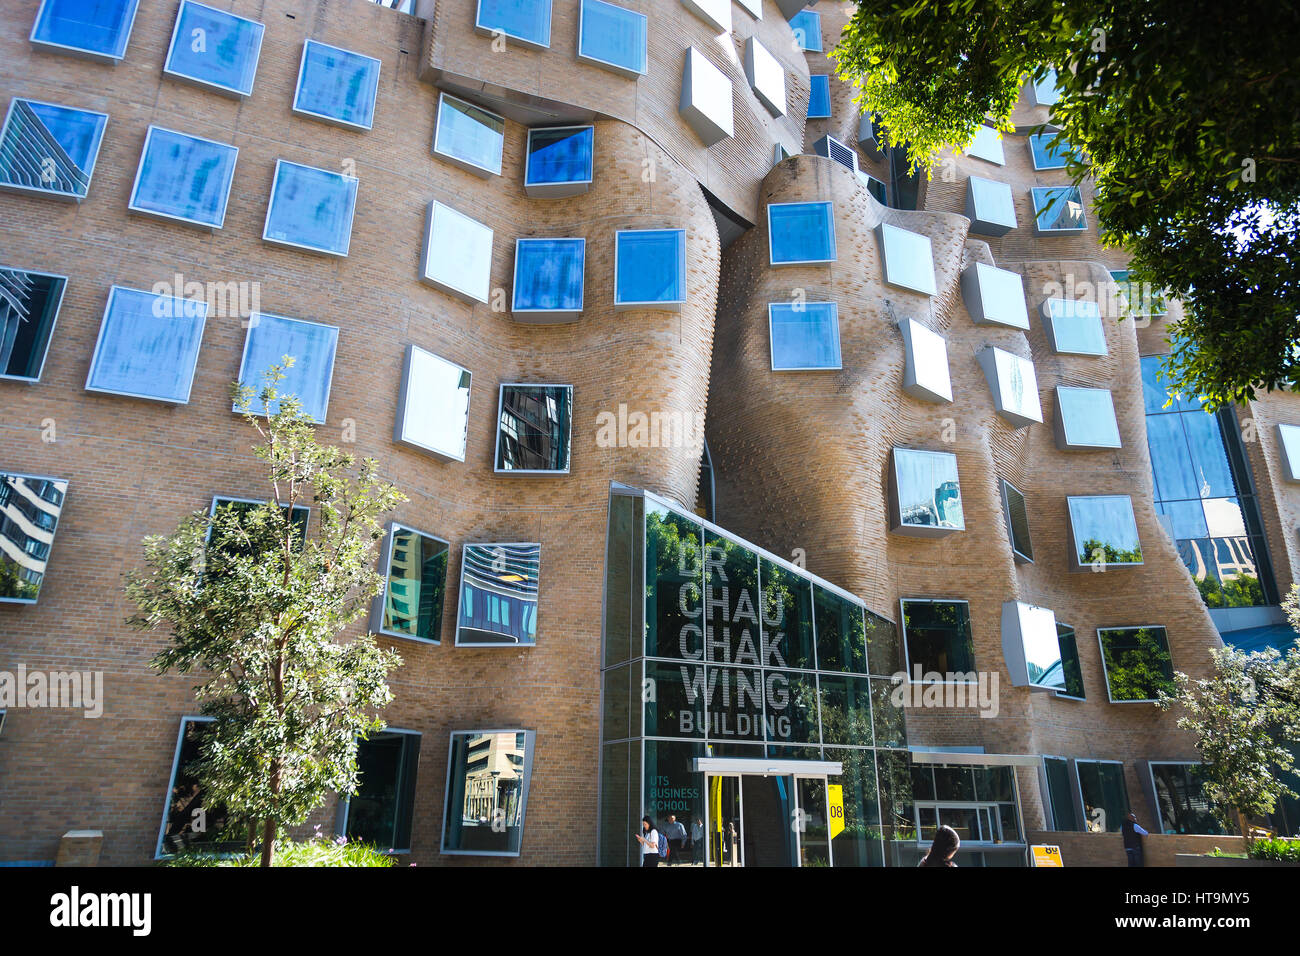 The first building in Australia designed by one of the worlds most  influential architects Frank Gehry